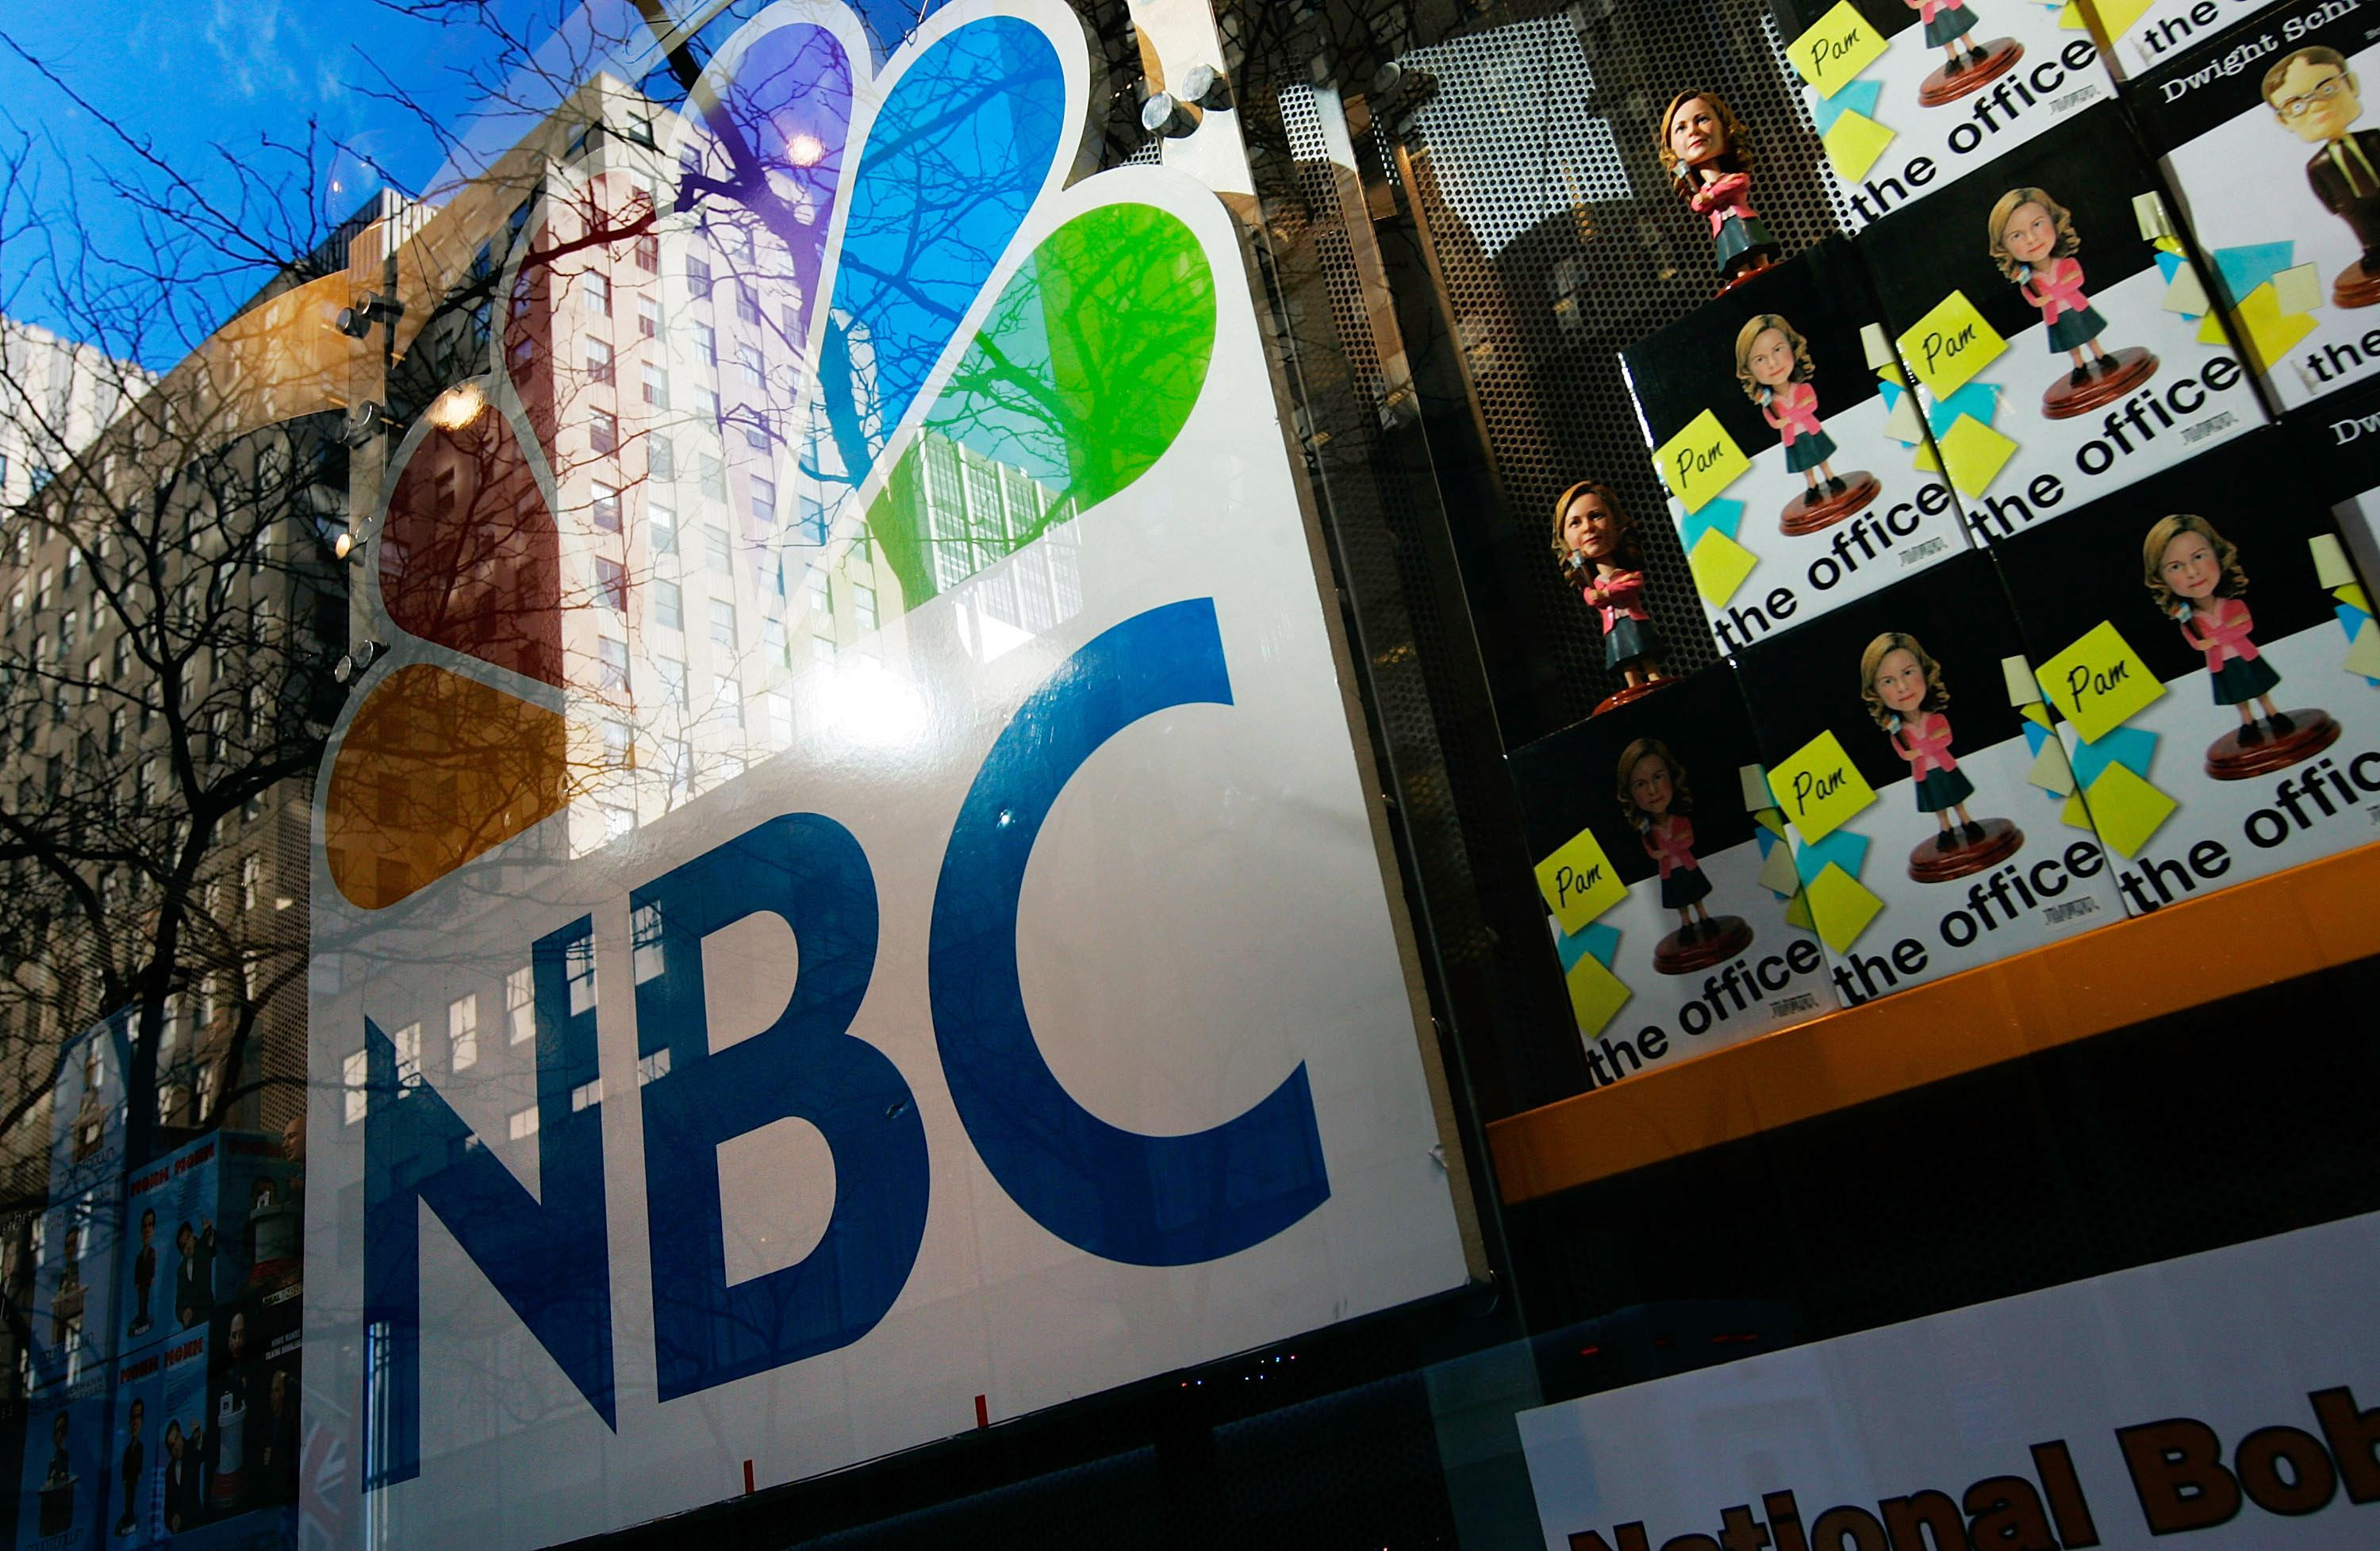 NBC's Olympics coverage has been flawless, according to NBC.